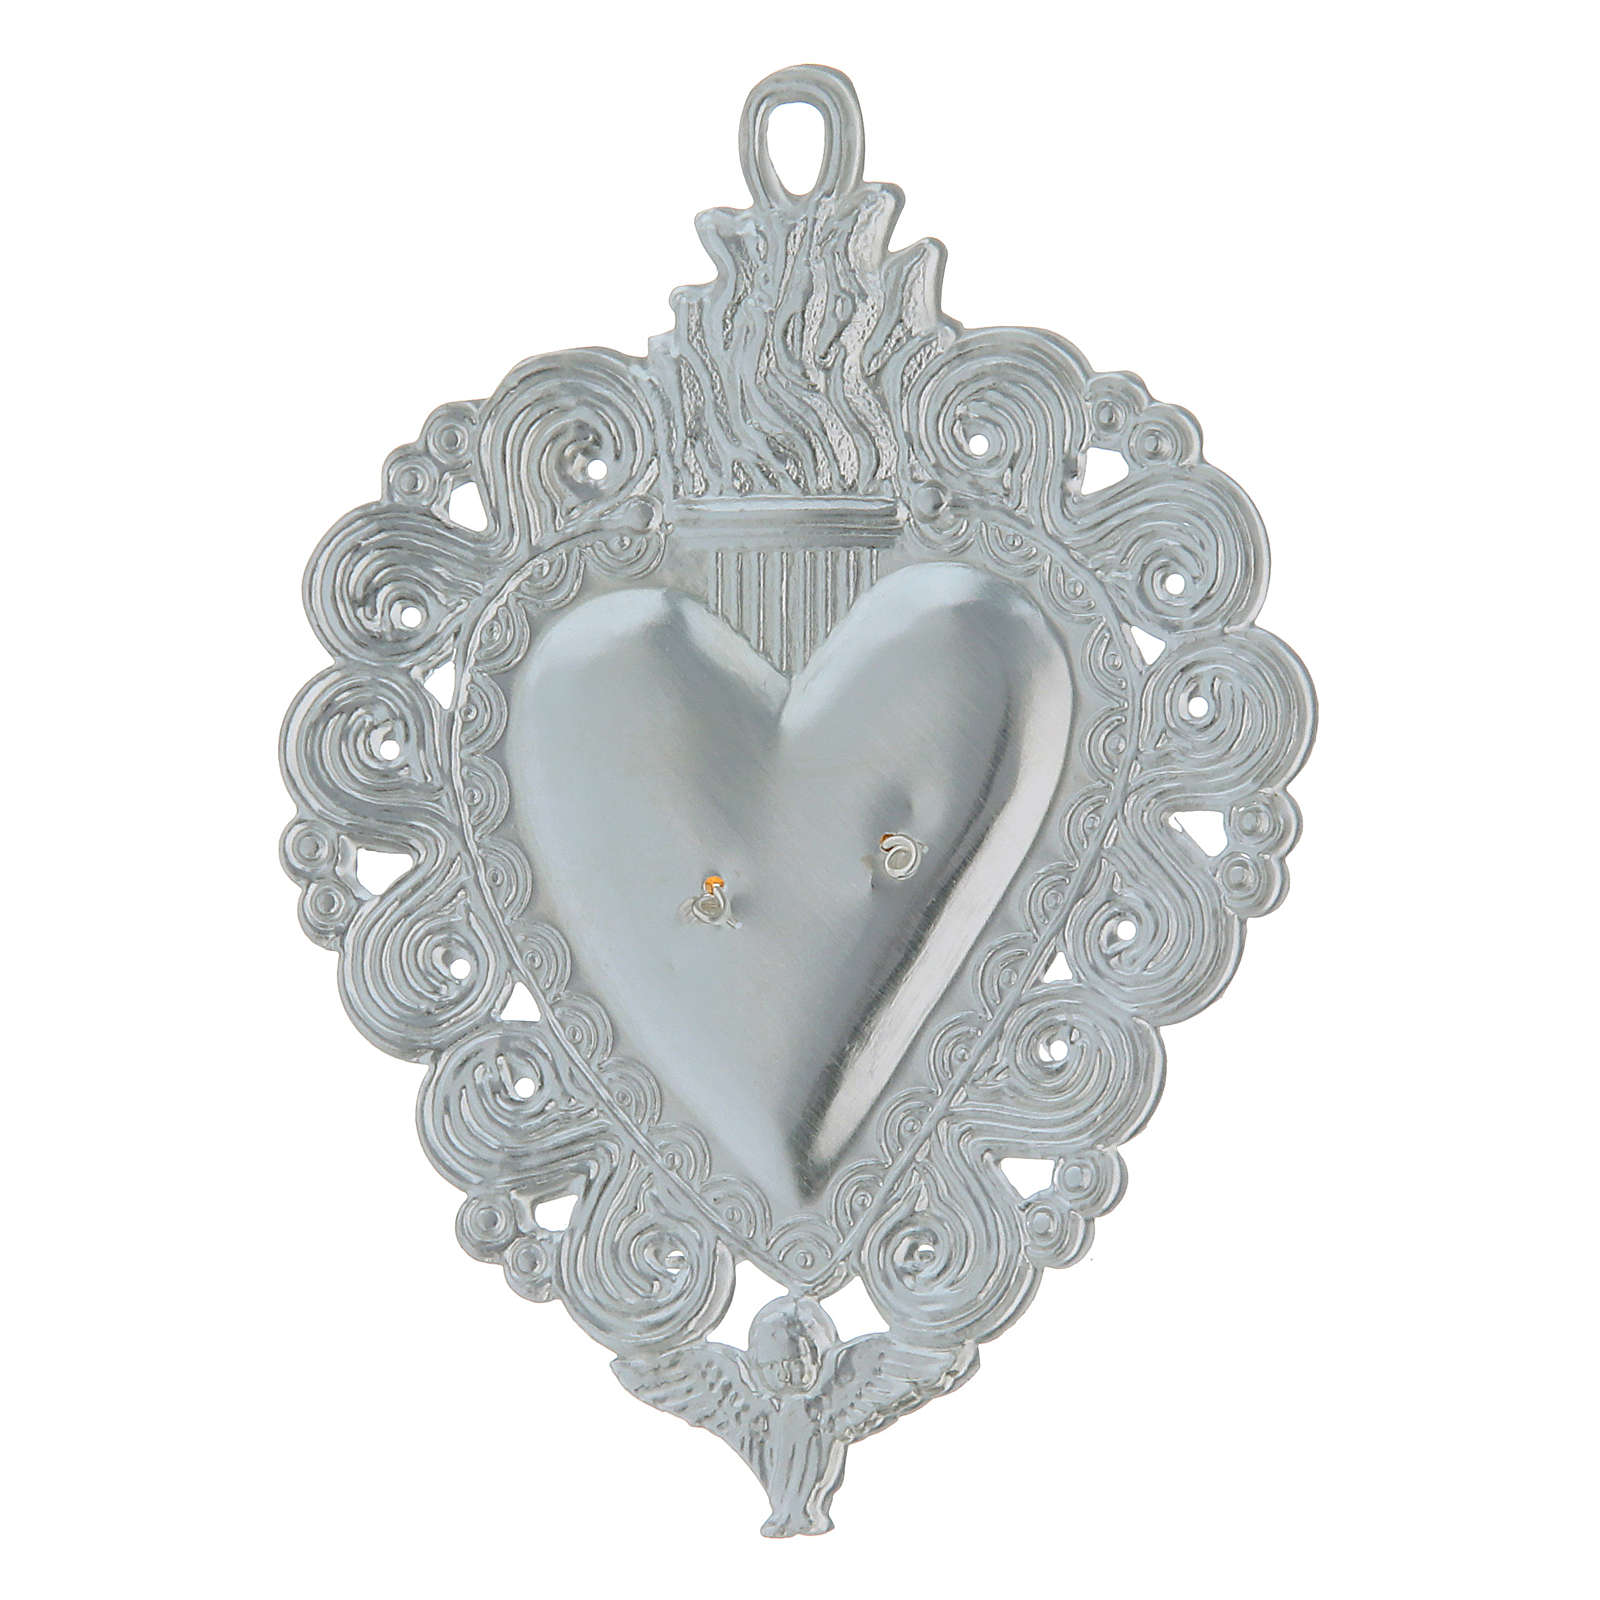 Ex-voto, Votive heart with angel 9.5x7.5cm 3